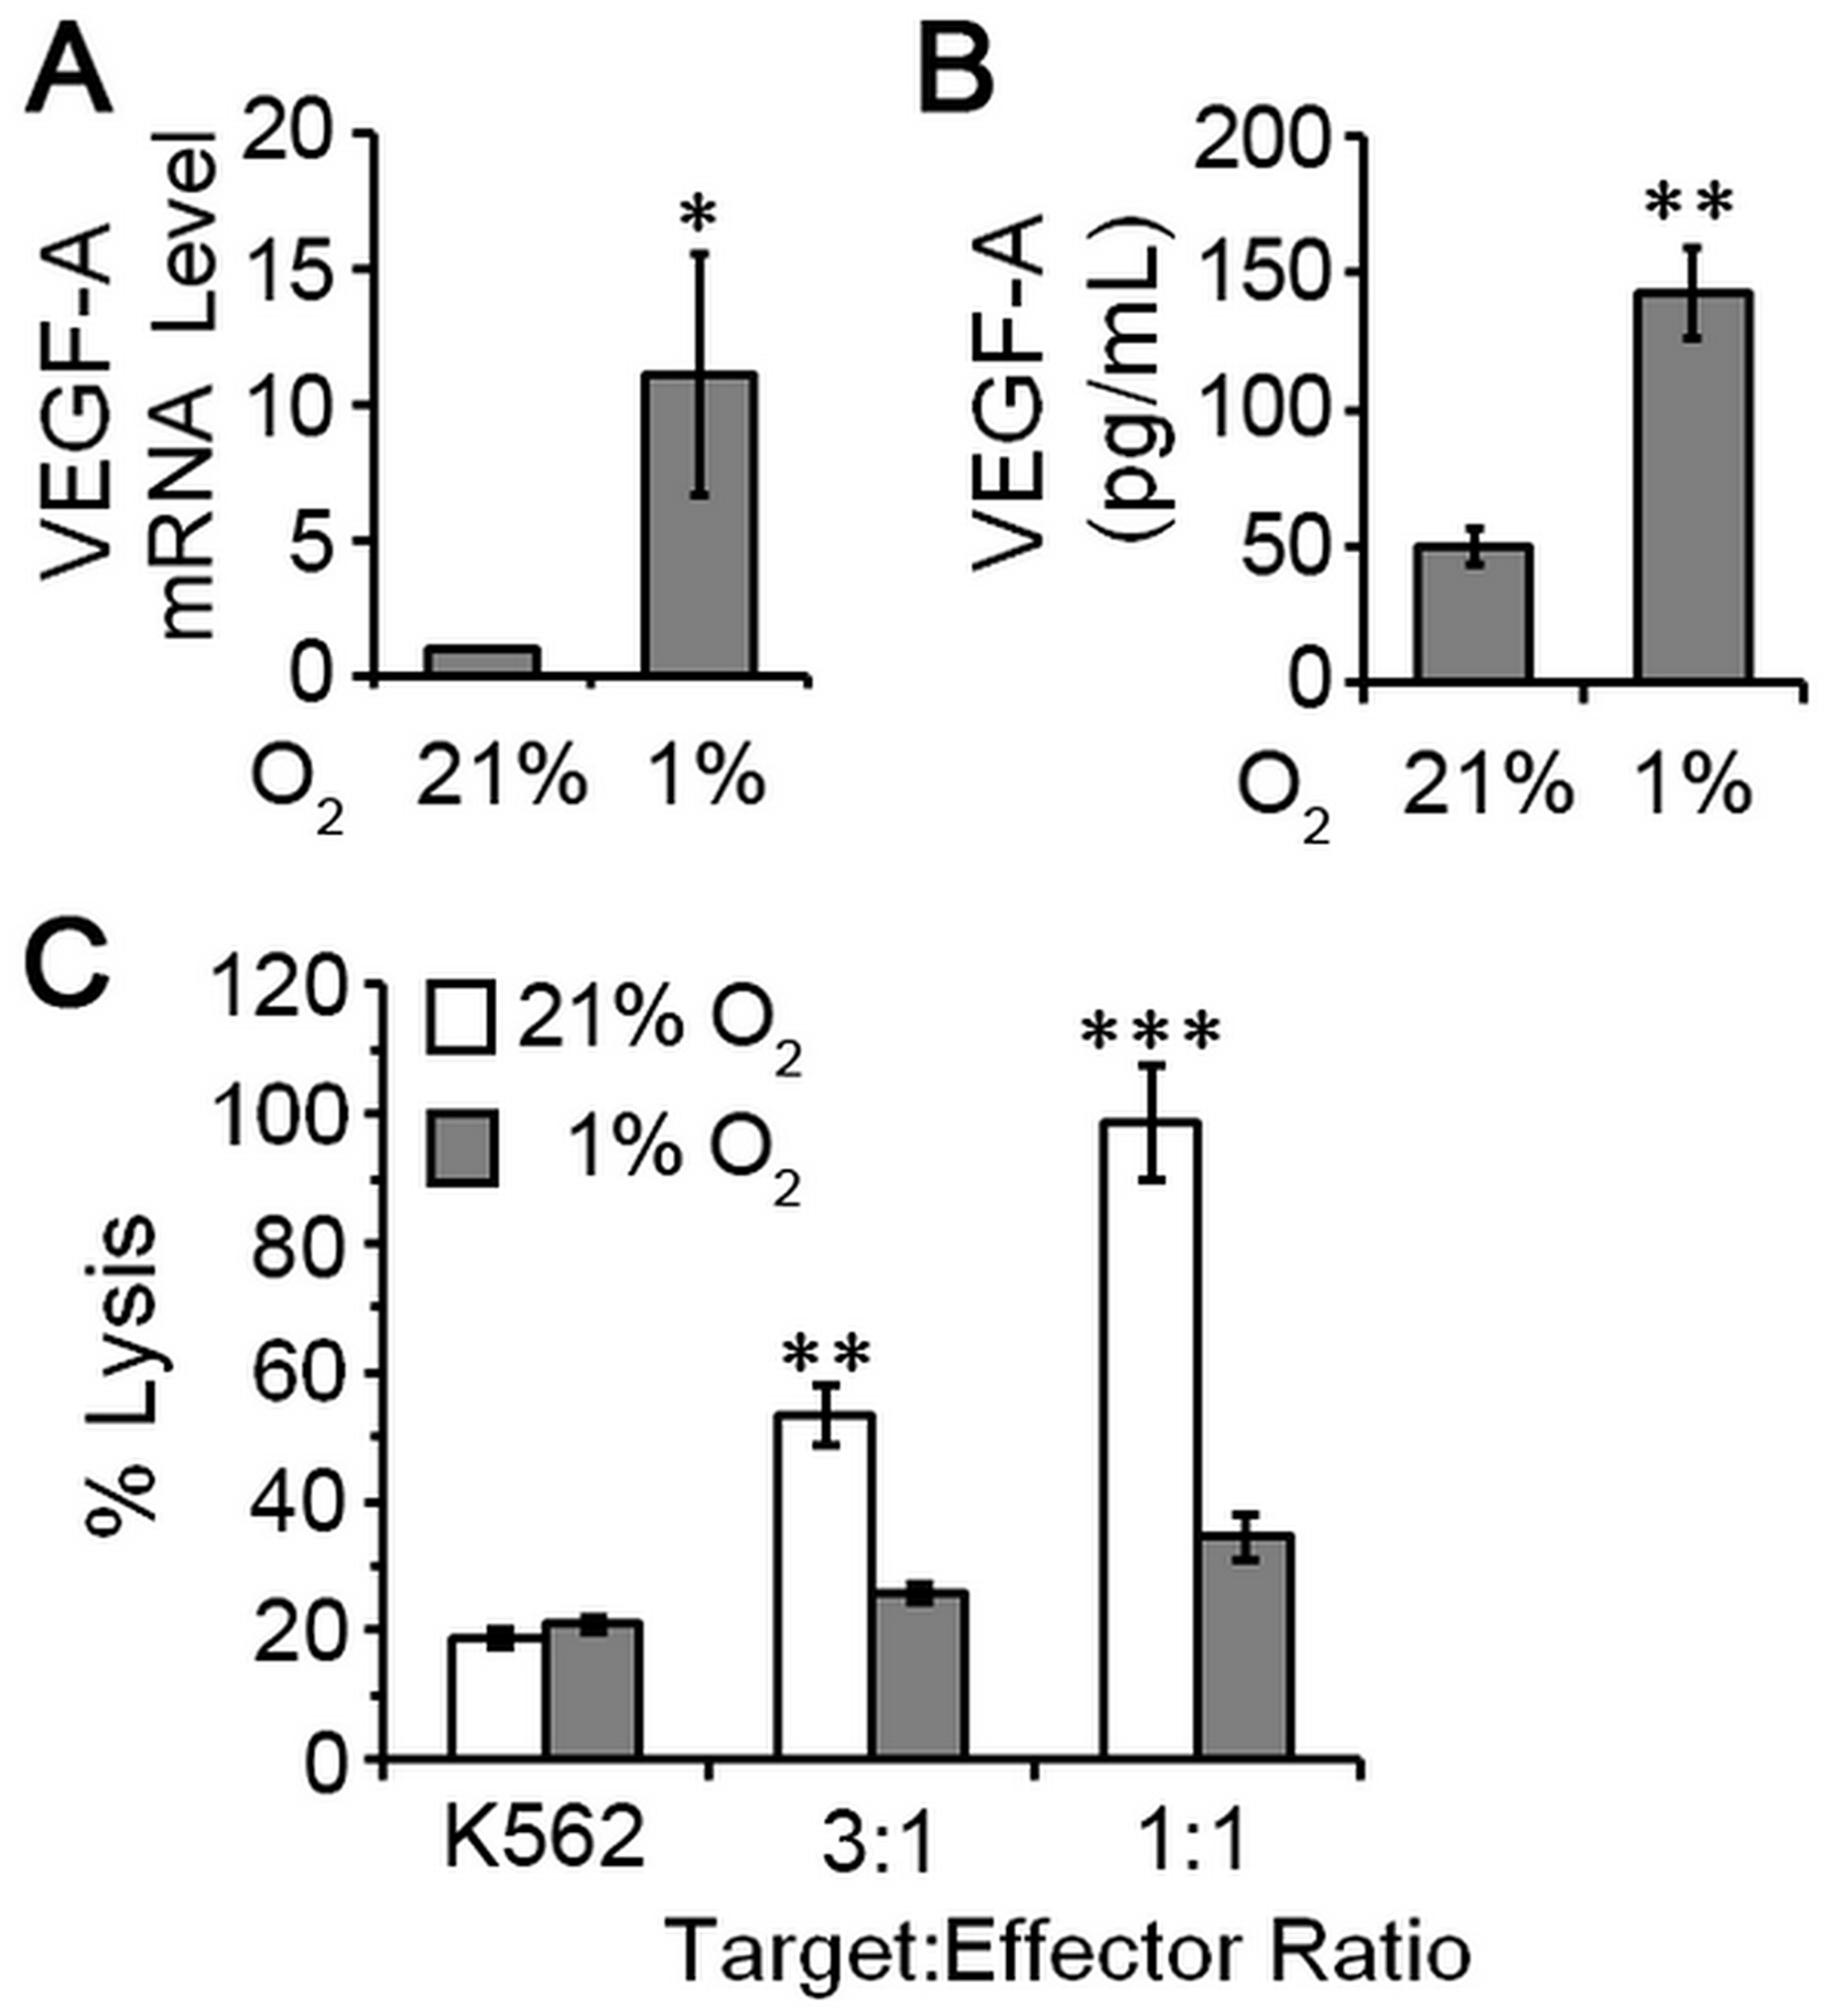 pNK cells exposed to hypoxia are poorly cytotoxic and proangiogenic.